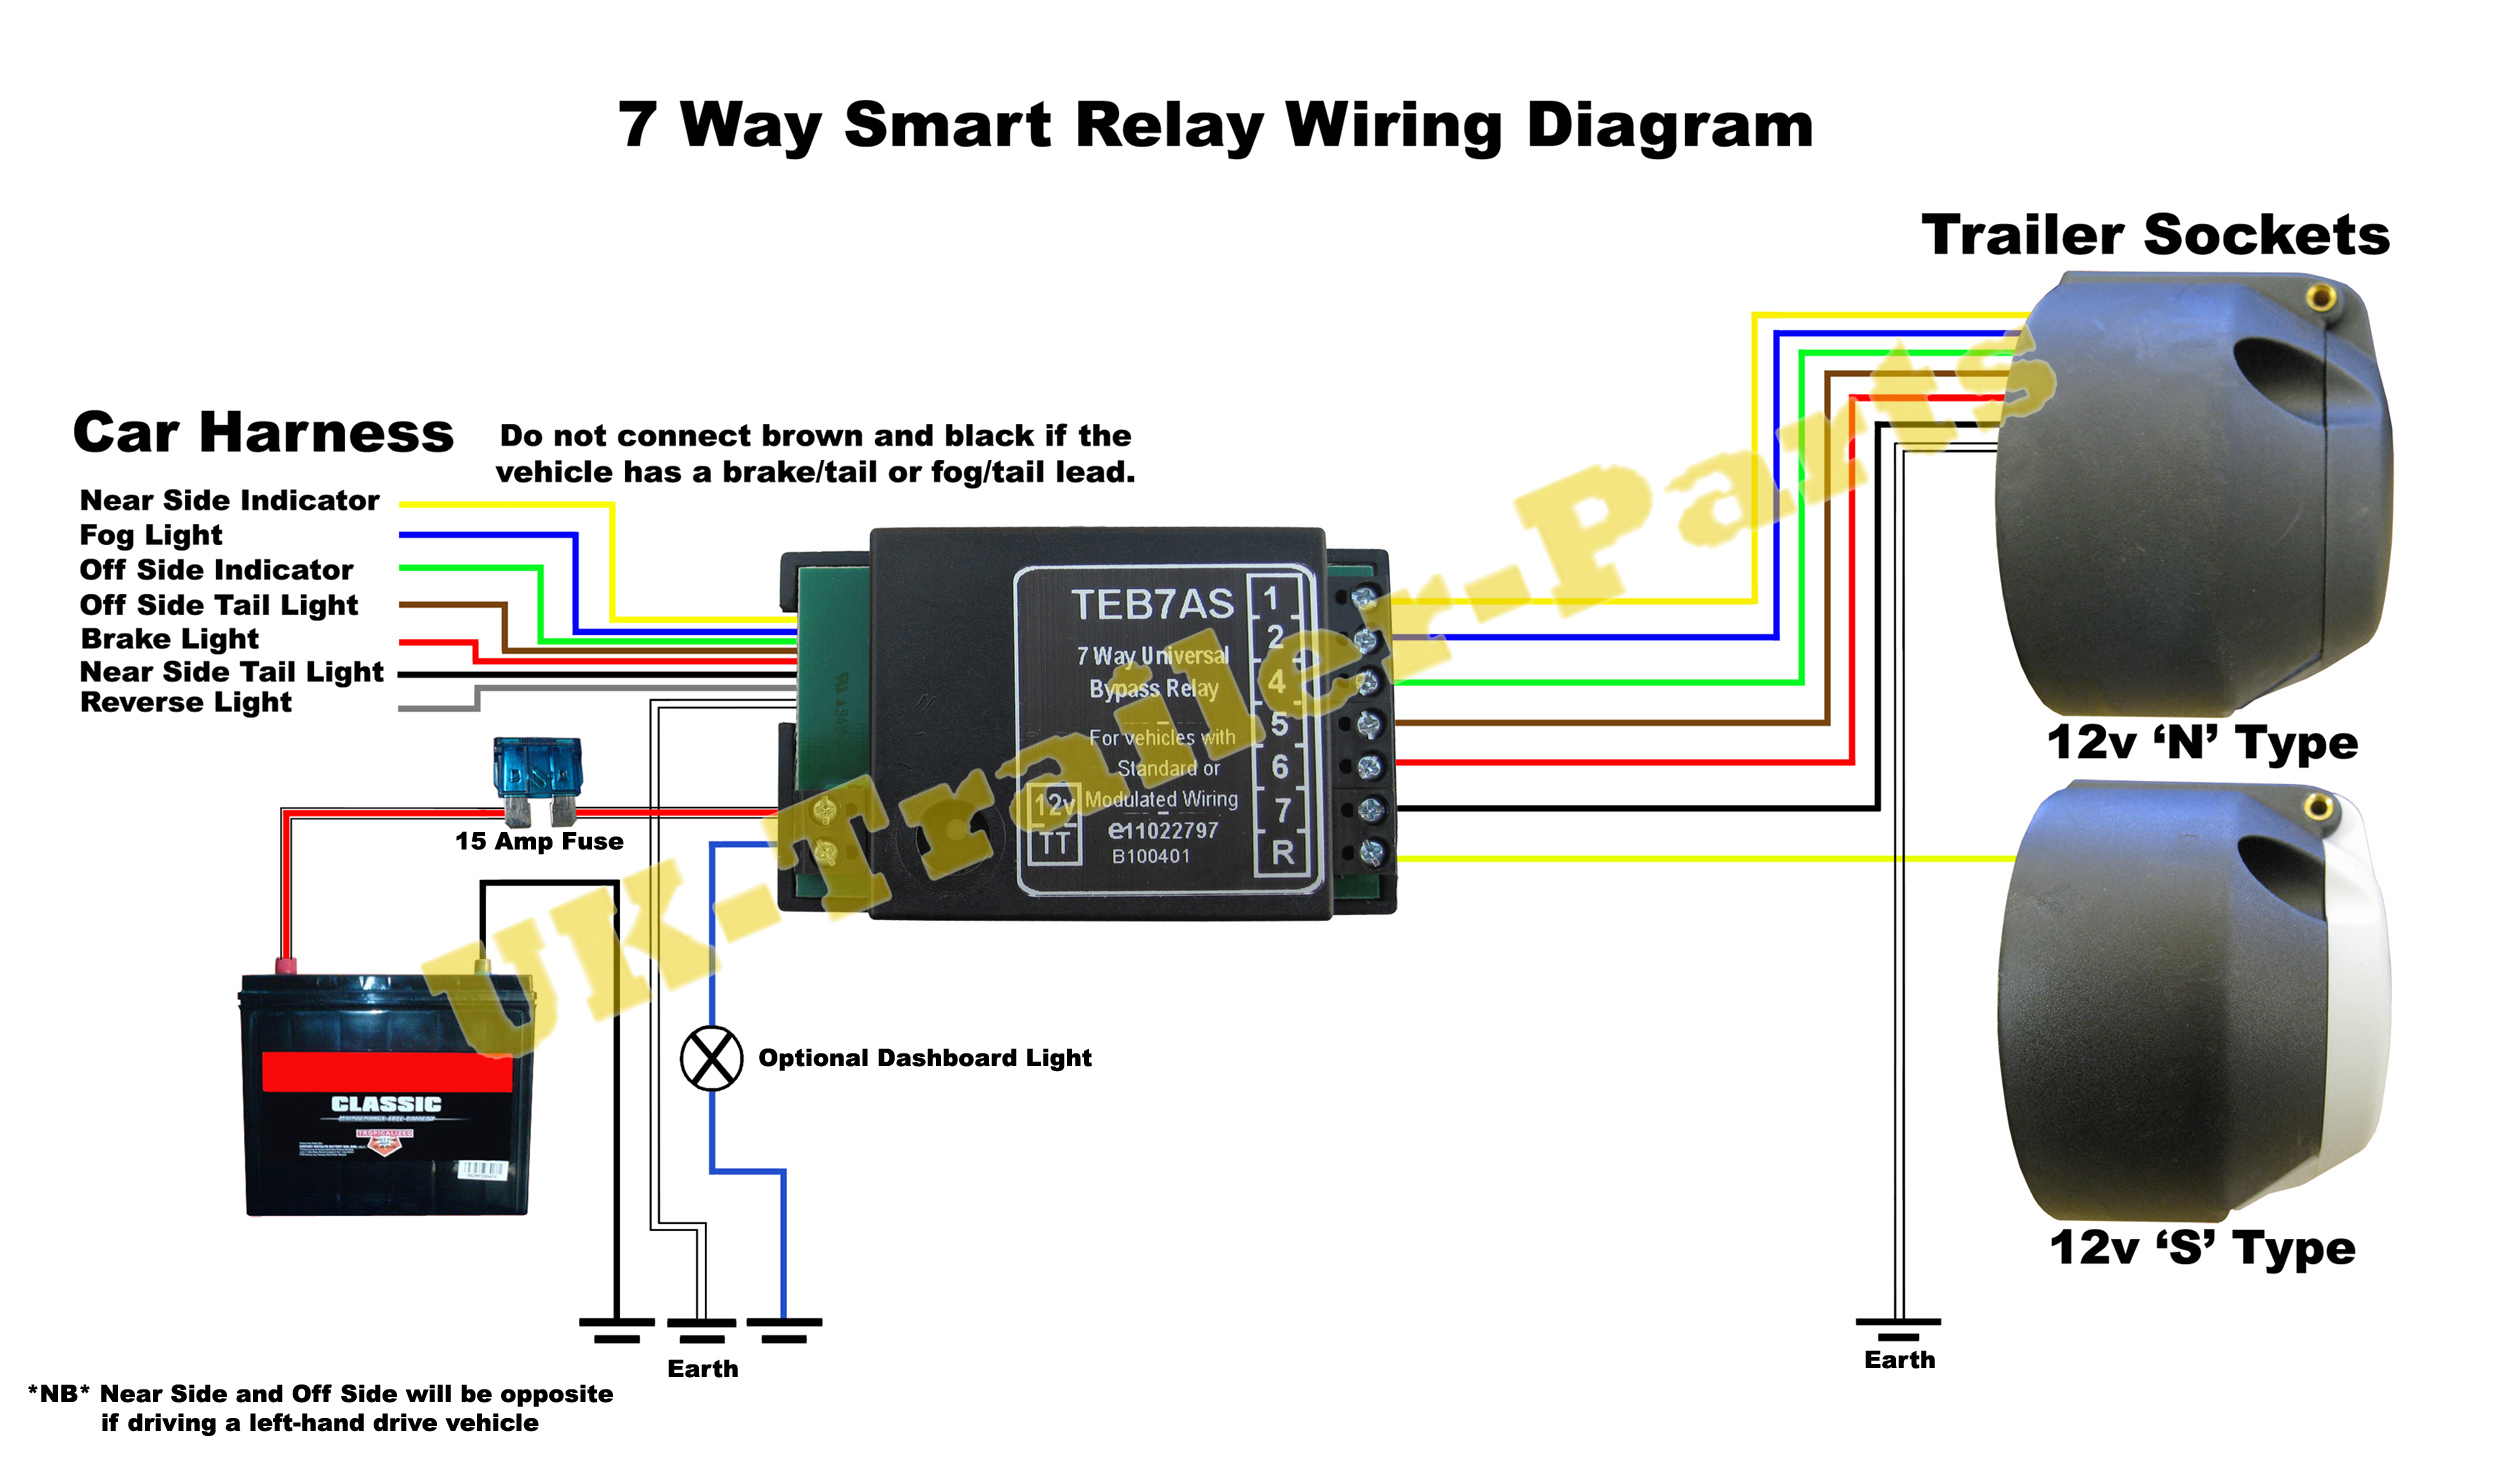 7 Way Universal Bypass Relay Wiring Diagram Uk Trailer Parts For Car Flasher Unit